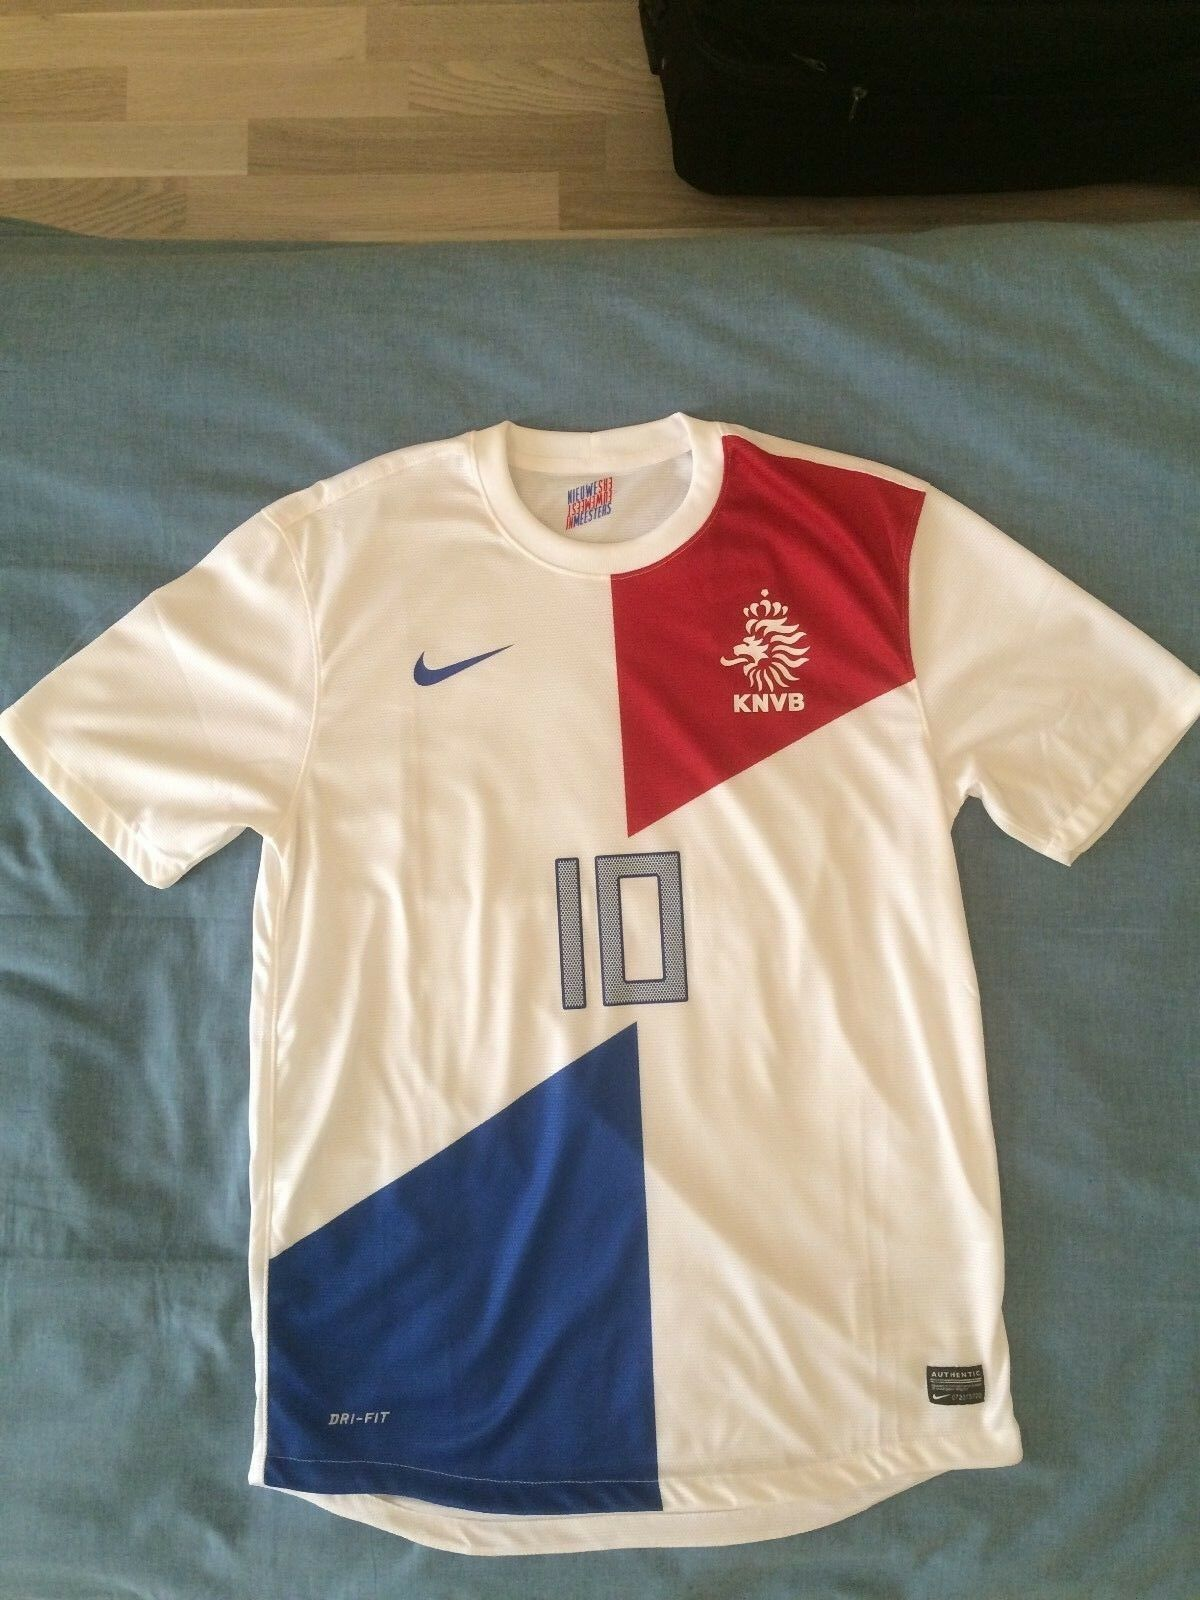 Netherlands Holland shirt jersey 2013 Wesley Sneijder replica new - with tags